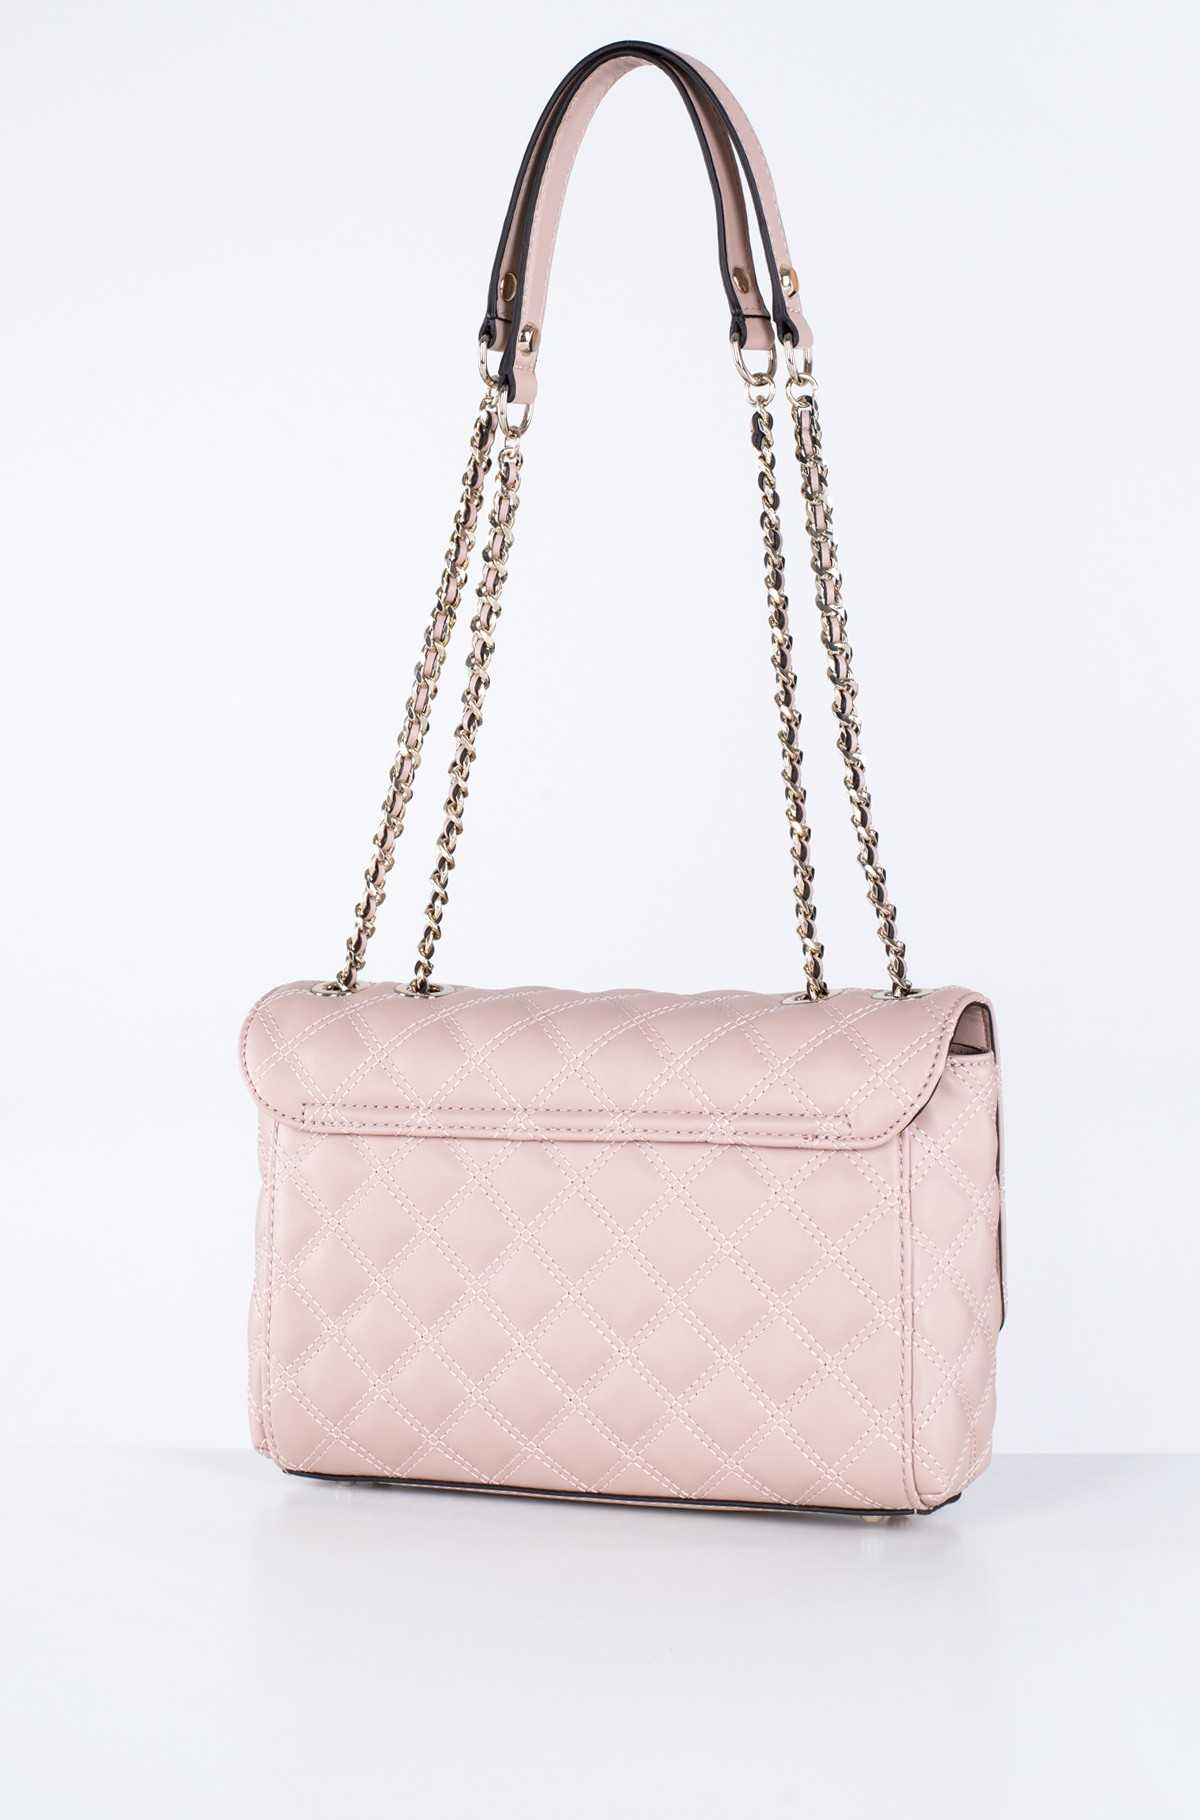 Shoulder bag HWEV76 79210-full-3